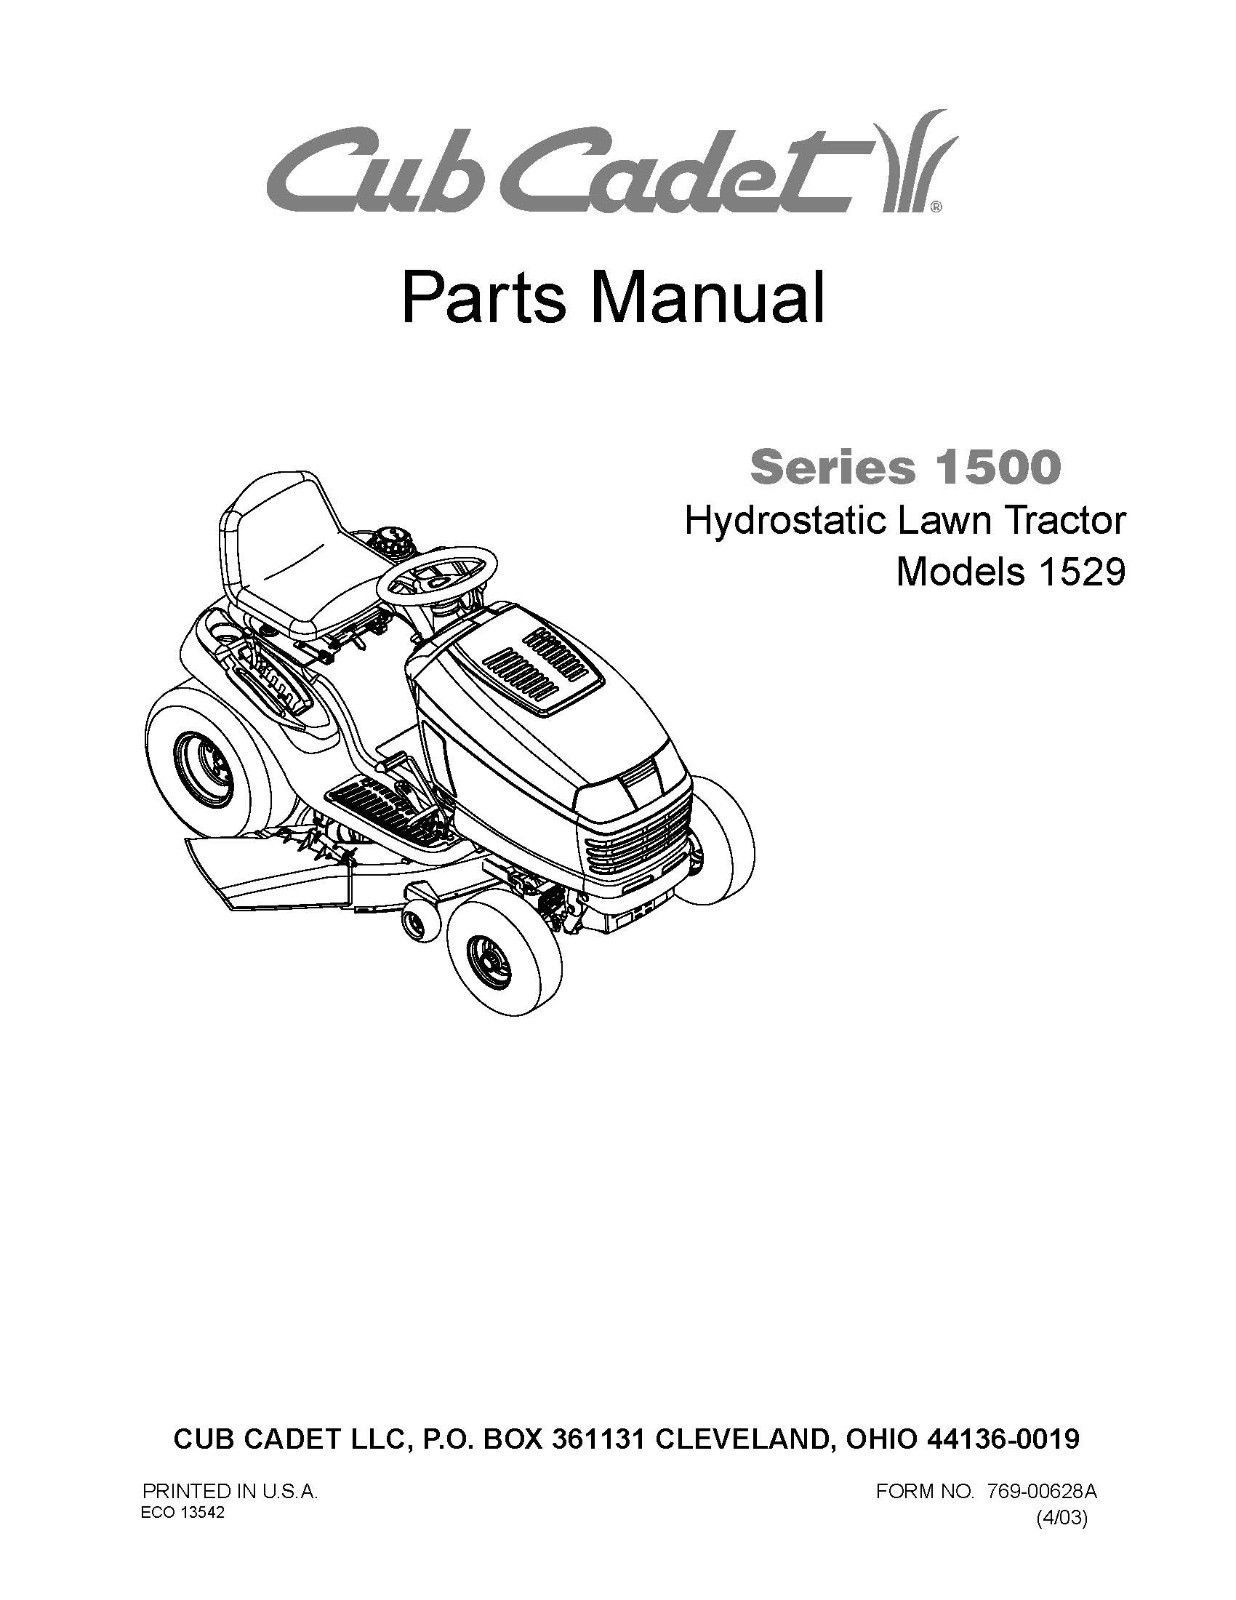 Cub Cadet 1500 Series Hydrostatic Lawn Tractor Parts Manual Model No. 1529